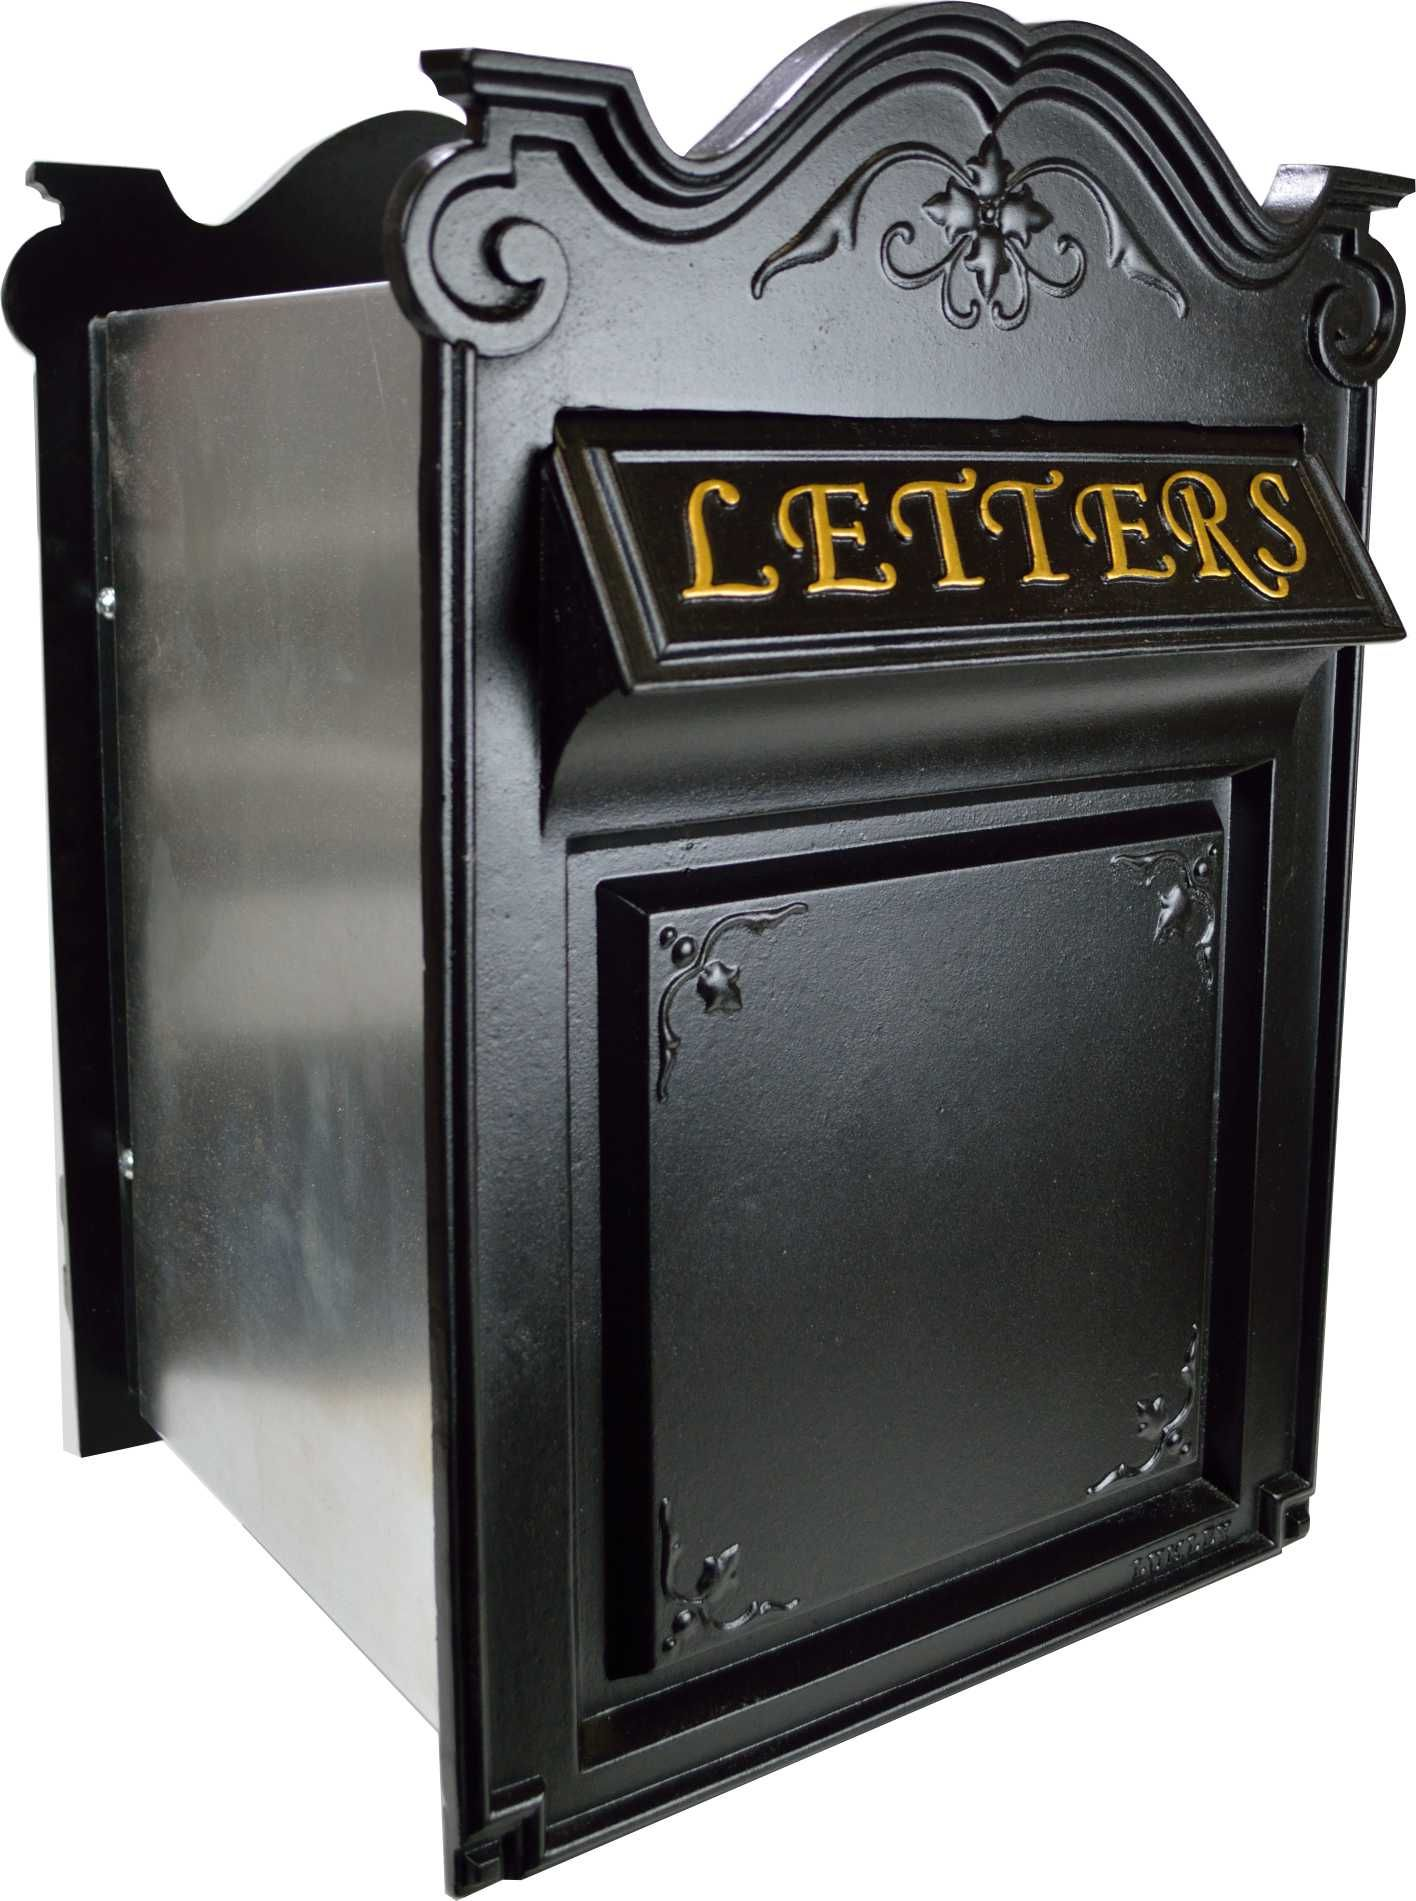 The Churchill Postbox This Has A Telescopic Adjustable Center Section For Installing Into A Brick Wall Wwwluml Letter Box Black French Provincial Old Mailbox